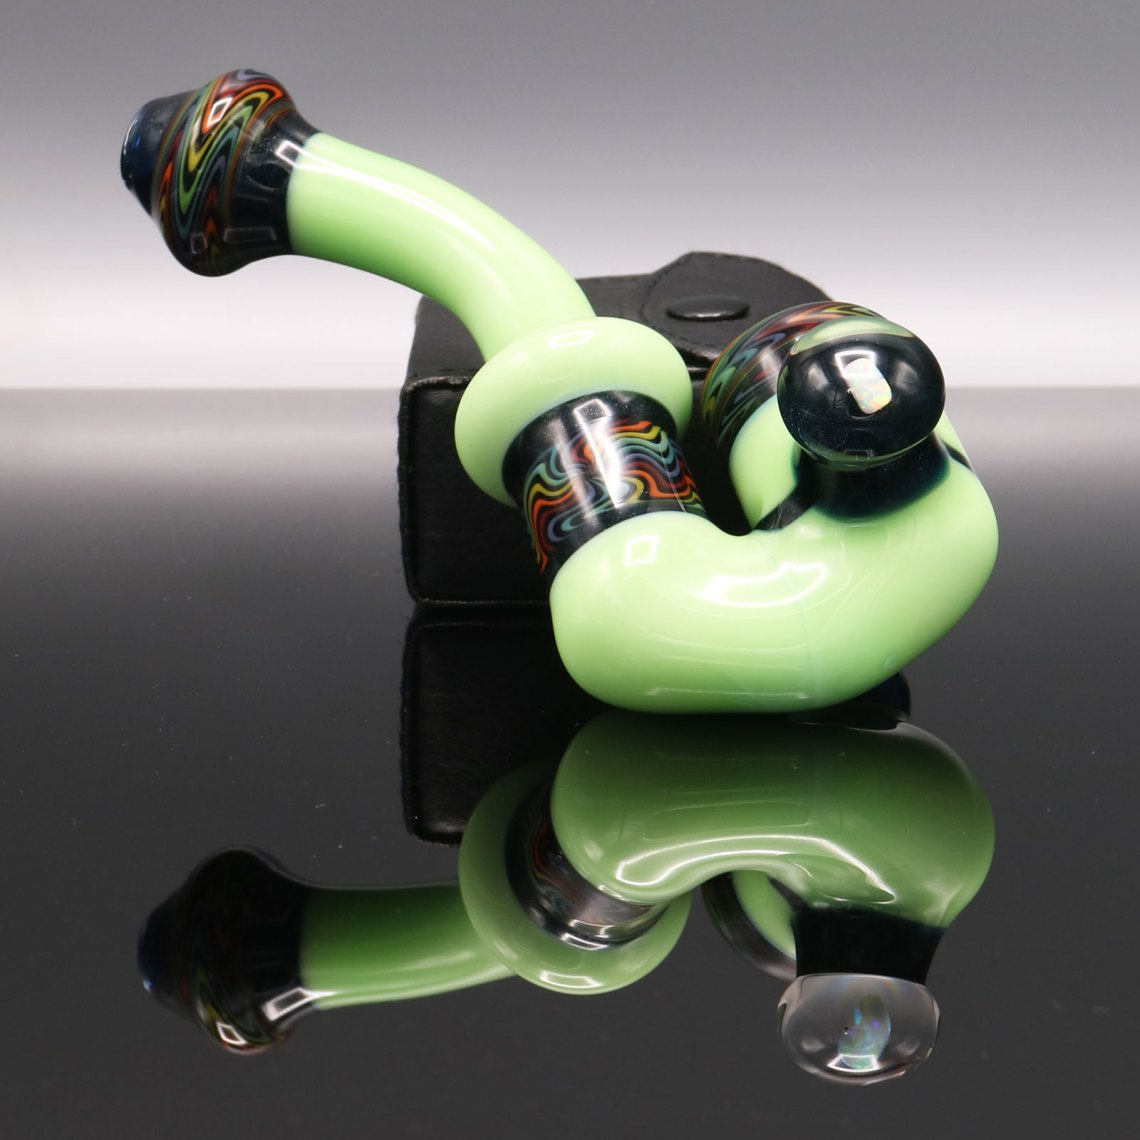 Chappell Glass – Green and Black Sherlock